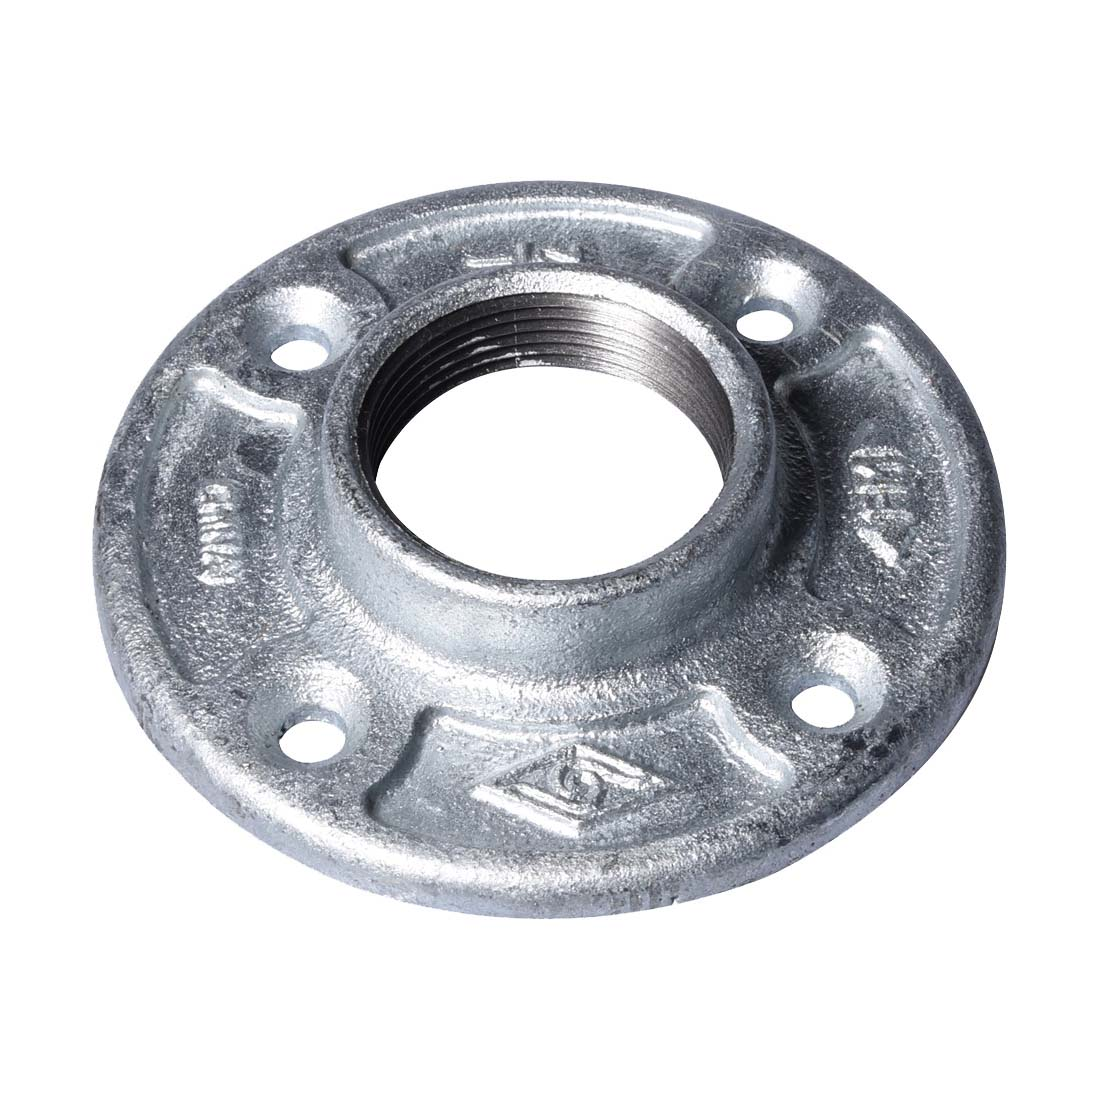 Picture of ProSource 27-11/2G Galvanized Floor Flange, 1-1/2 in, Malleable Iron